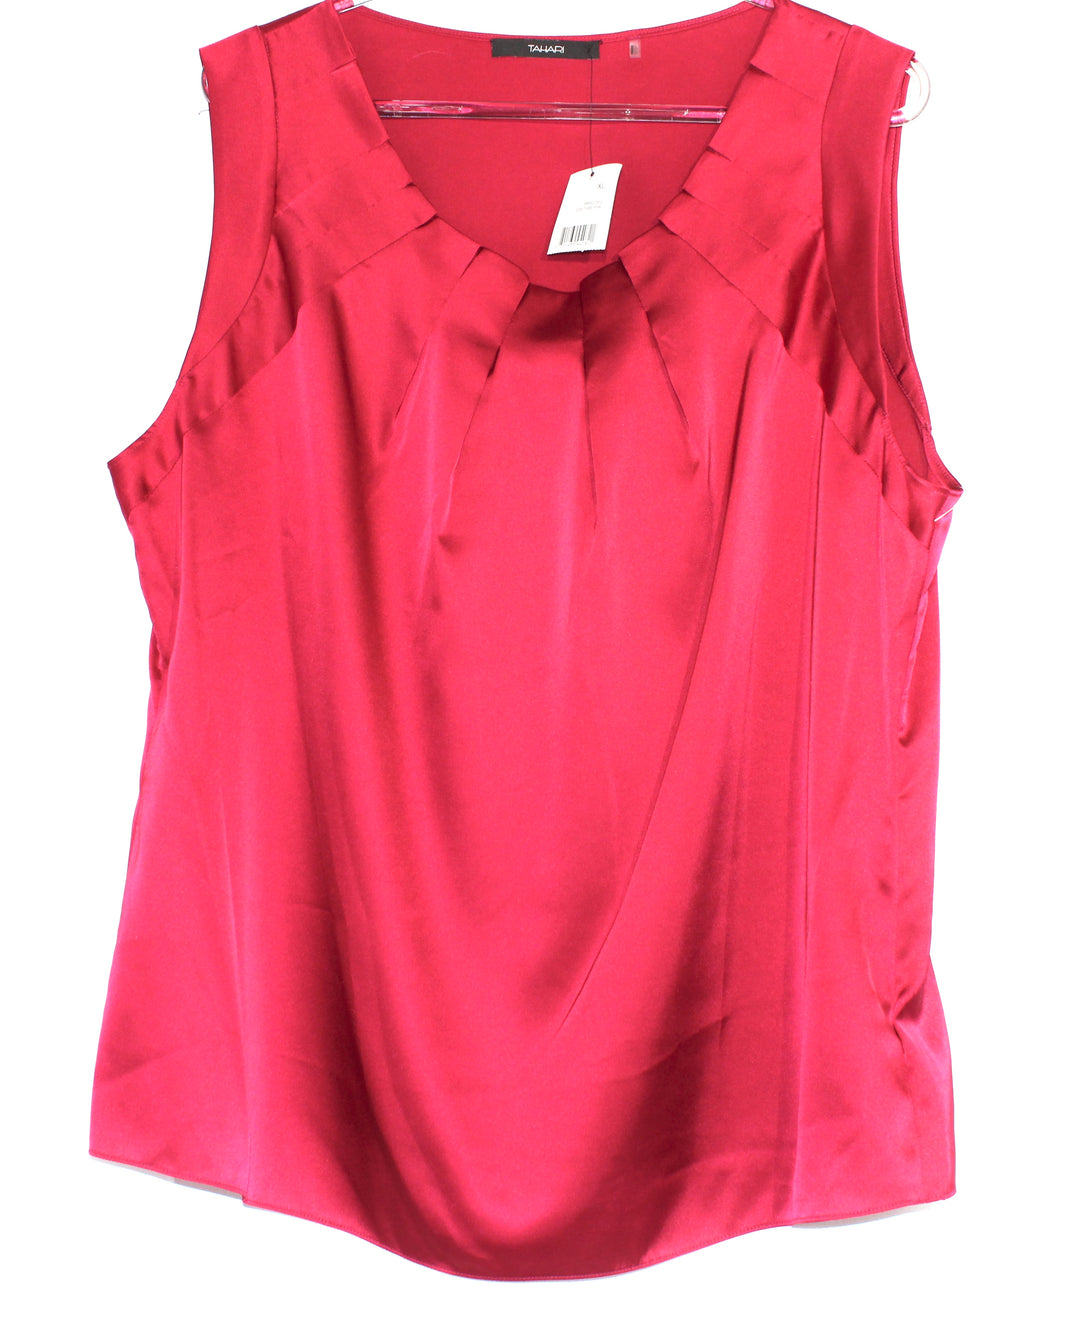 Primary Photo - BRAND: TAHARI <BR>STYLE: TOP SLEEVELESS <BR>COLOR: RED <BR>SIZE: XL <BR>SKU: 262-26211-136475<BR><BR>3% ELASTANE